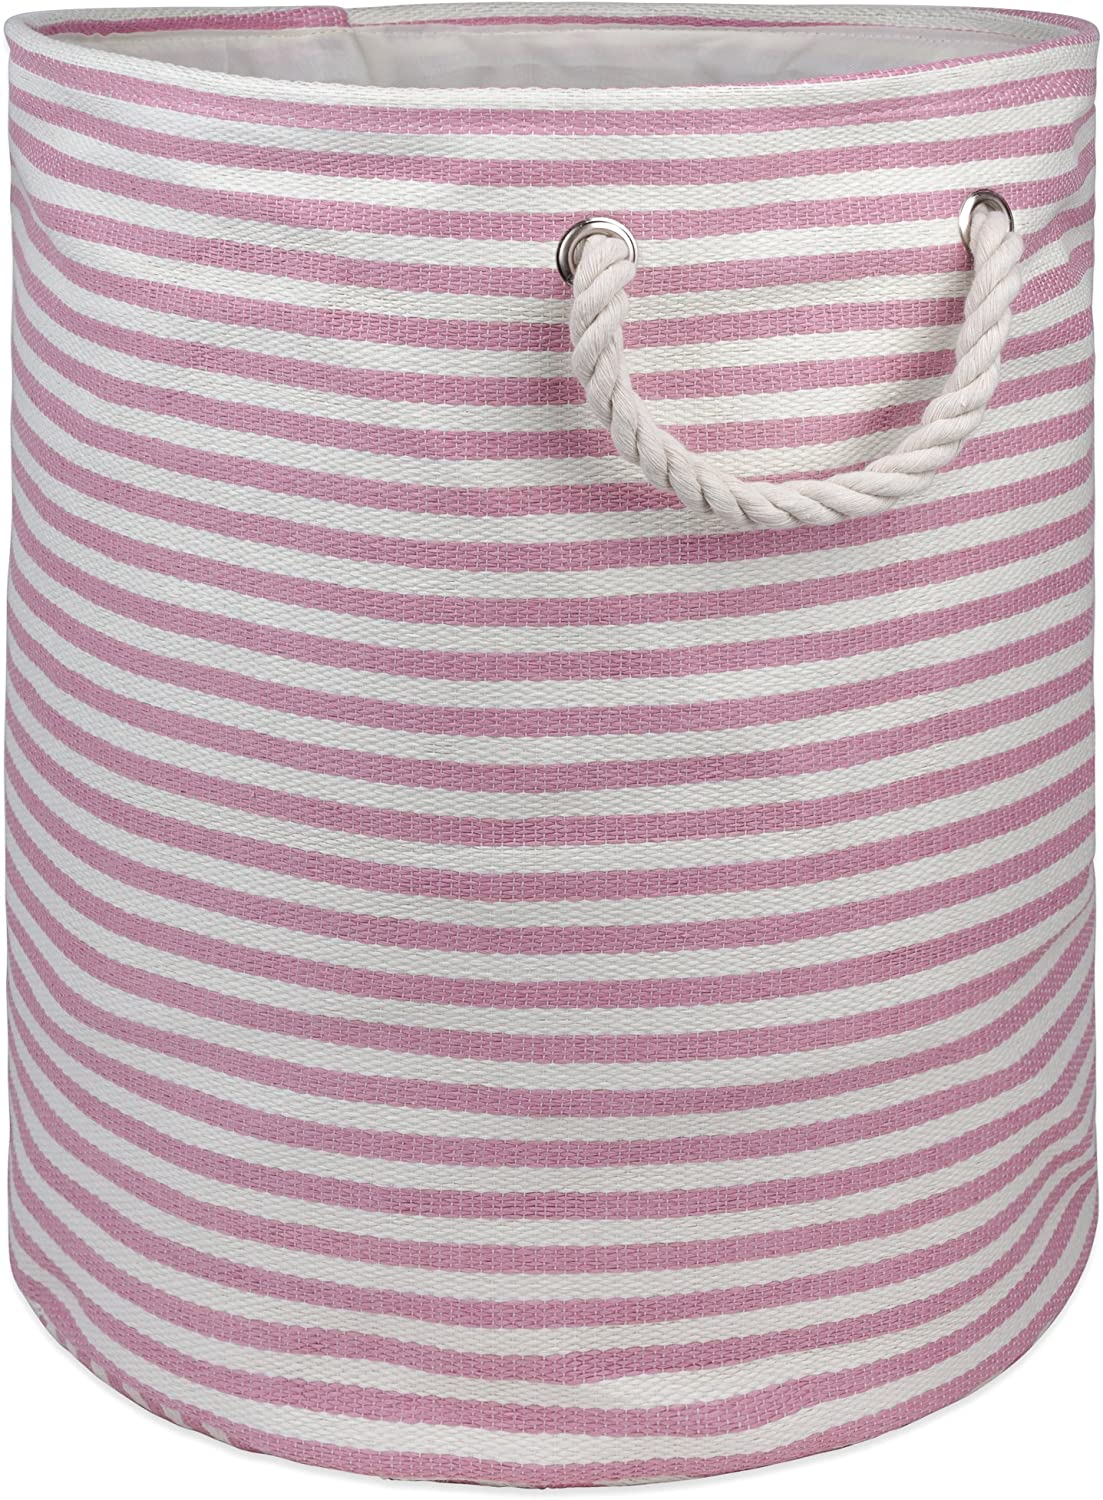 """DII, Woven Paper Storage Bin, Collapsible, 20x15"""", Rose"""